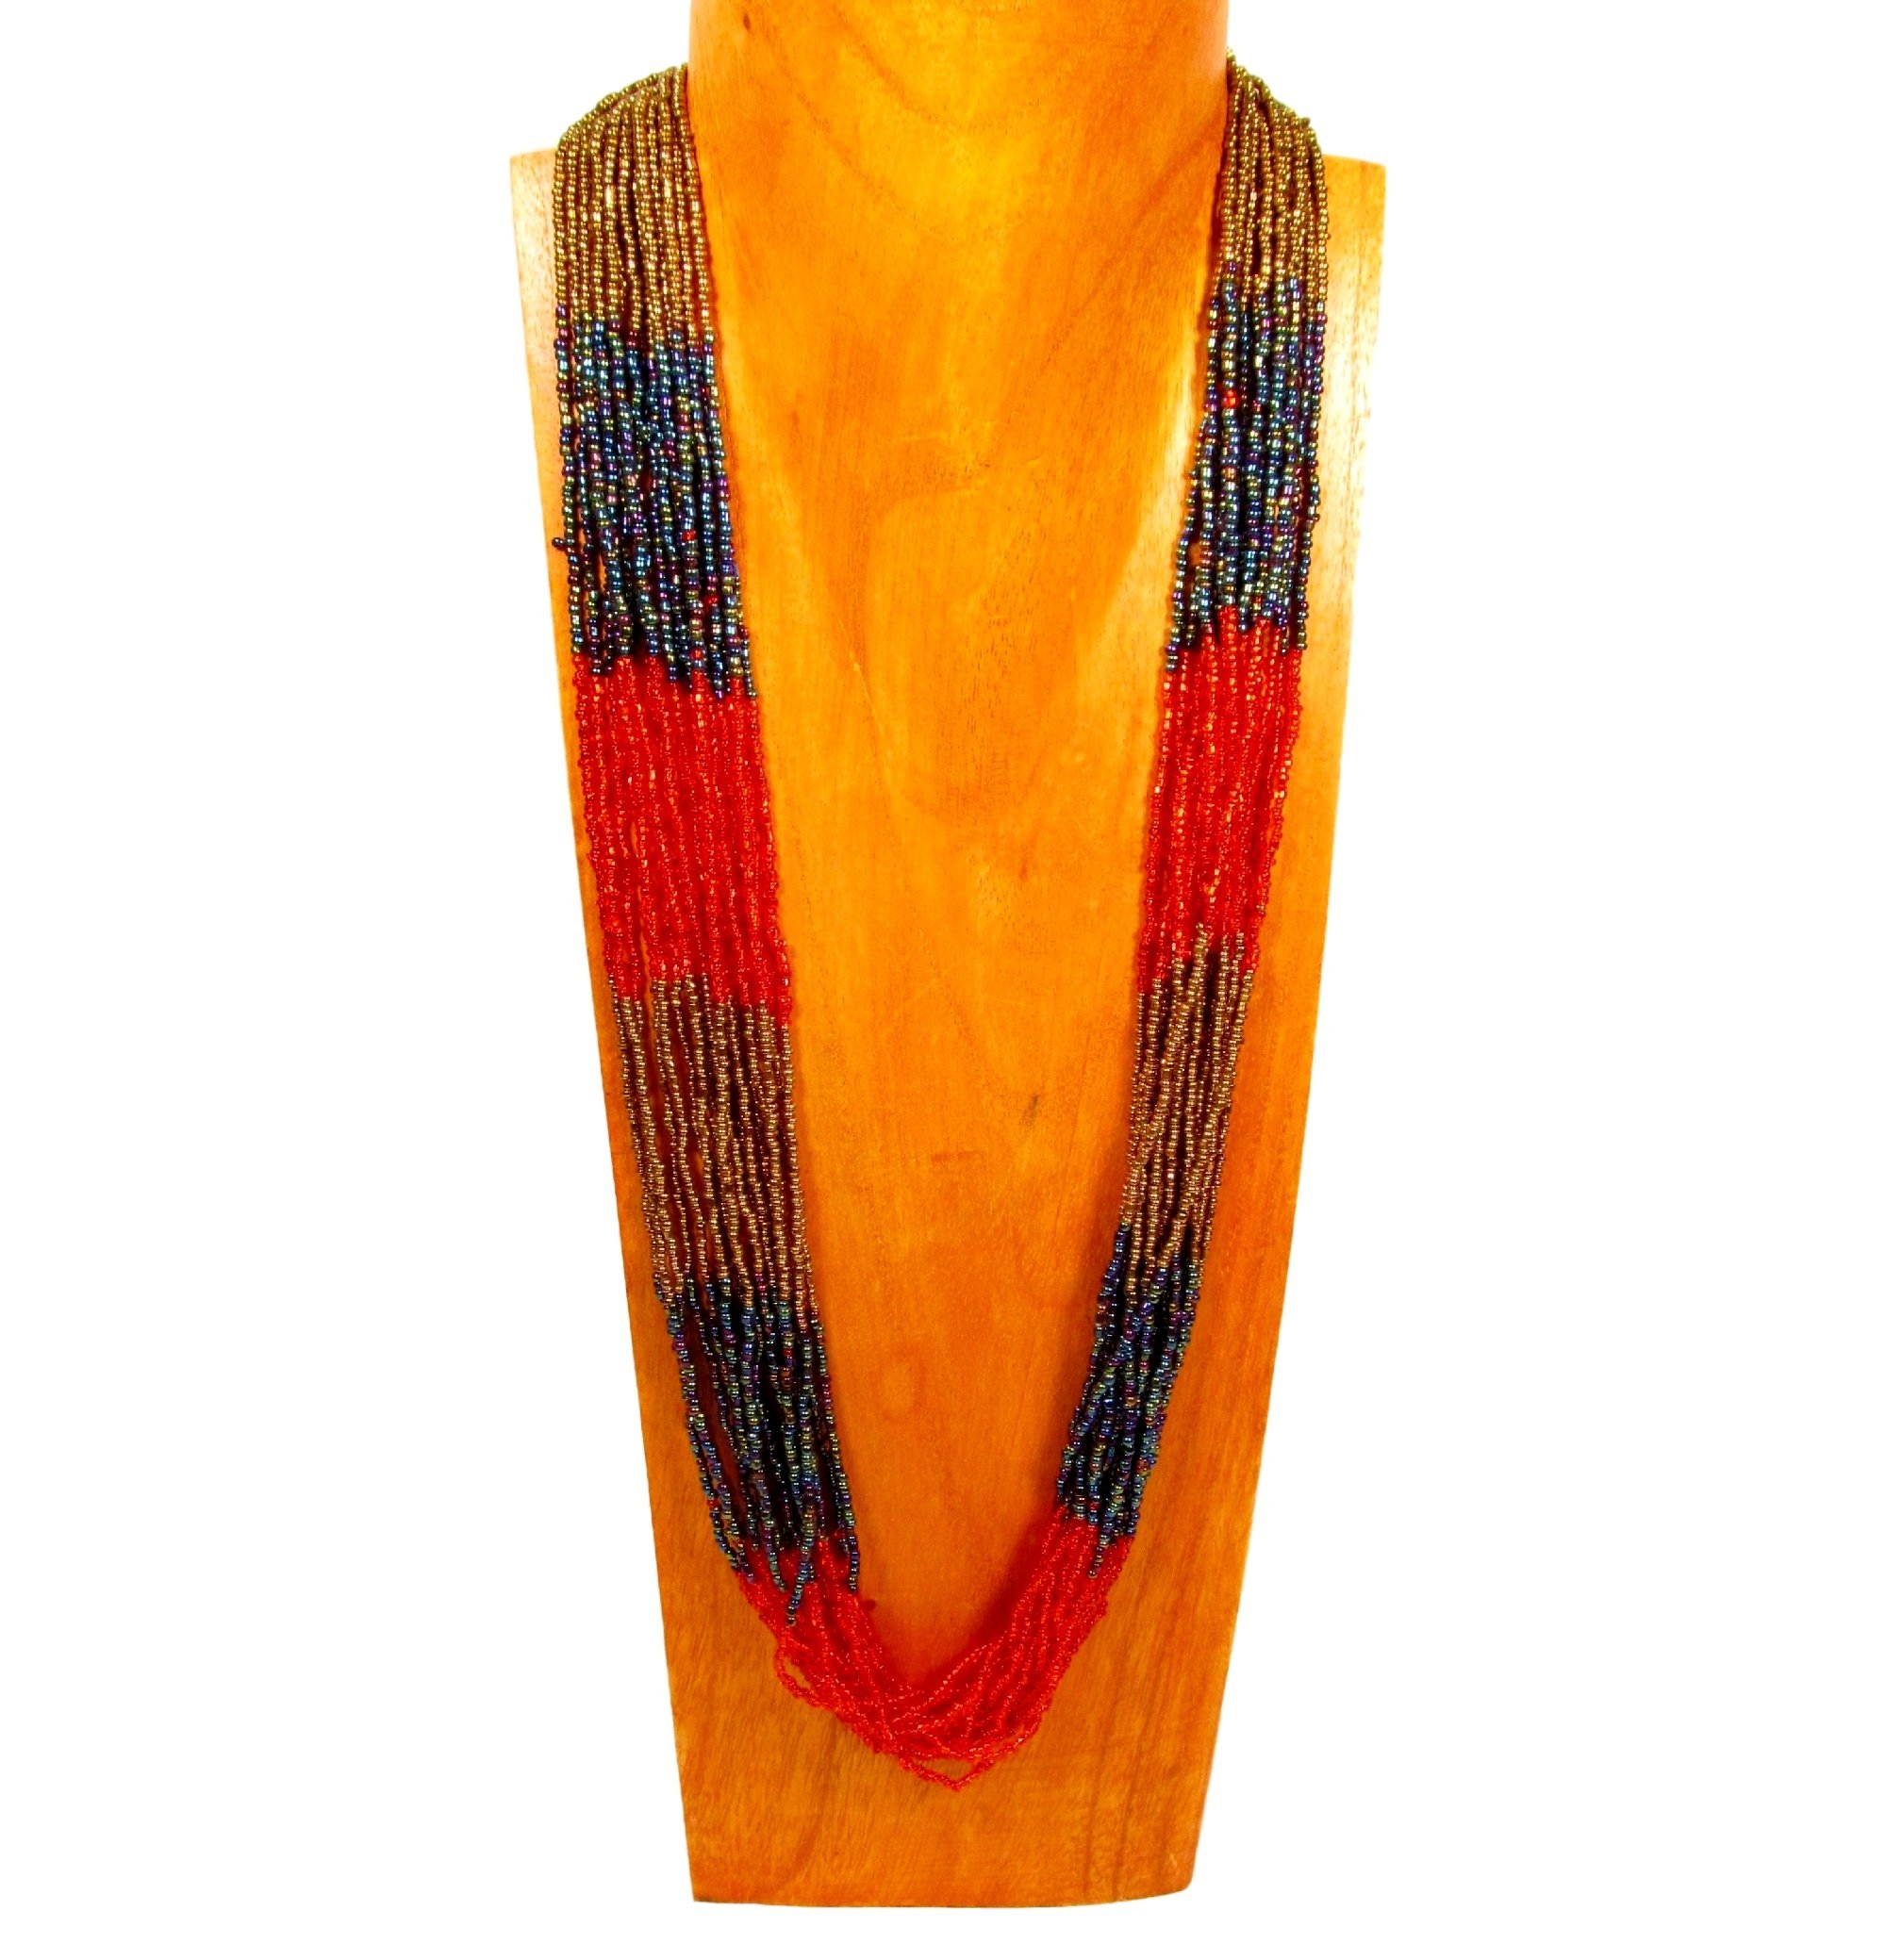 32'' Multi Strand Glass Beaded Red/Gold Color Block Style Handmade Necklace Bali Bay Trading Co